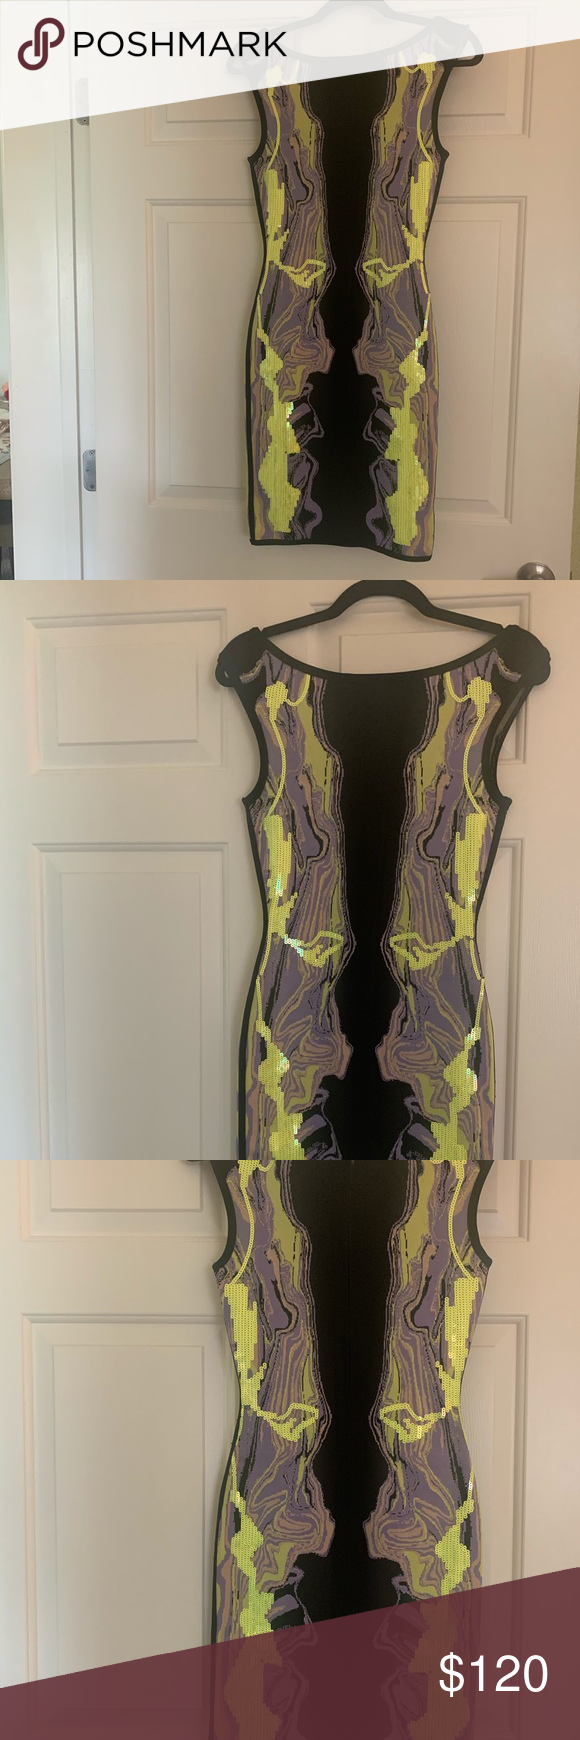 Body Con Dress Bodycon dress. Gorgeous material. Fits like a glove. The perfect night out dress! Especially for Miami or Vegas. Never been worn. Perfect condition. Je'Amor Dresses Mini